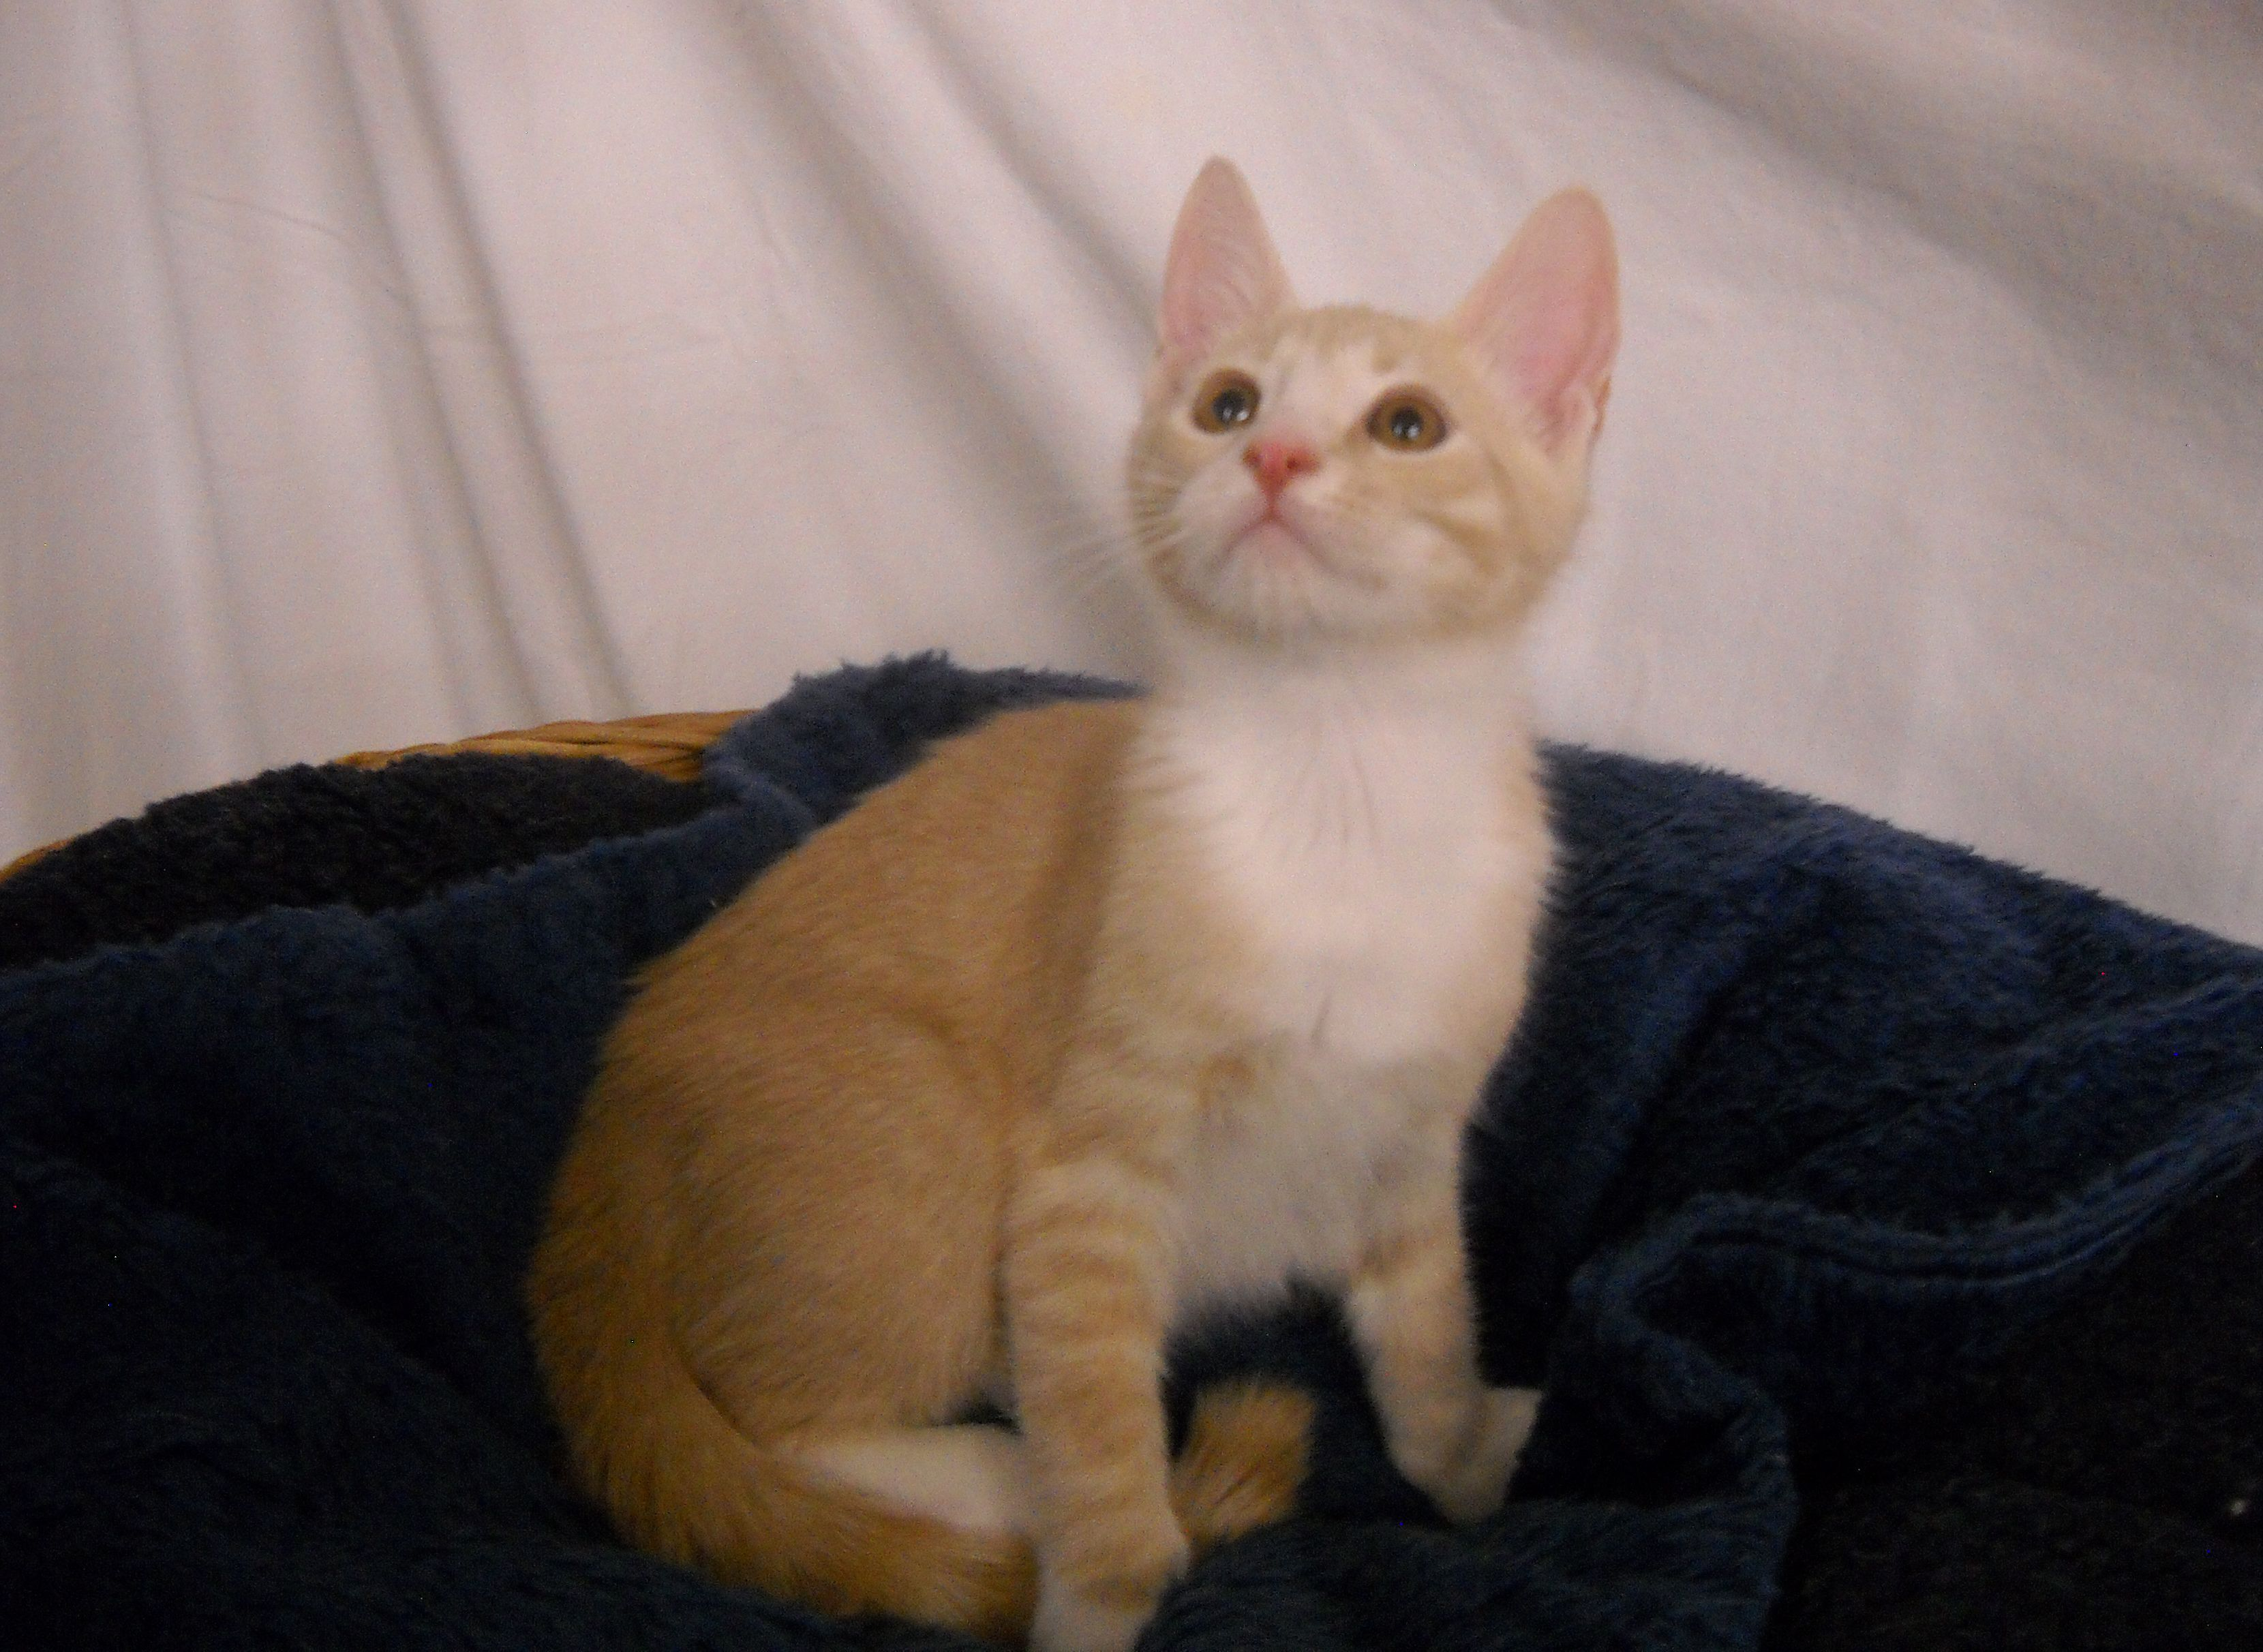 Guacamole is a dilute orange domestic shorthaired kitten